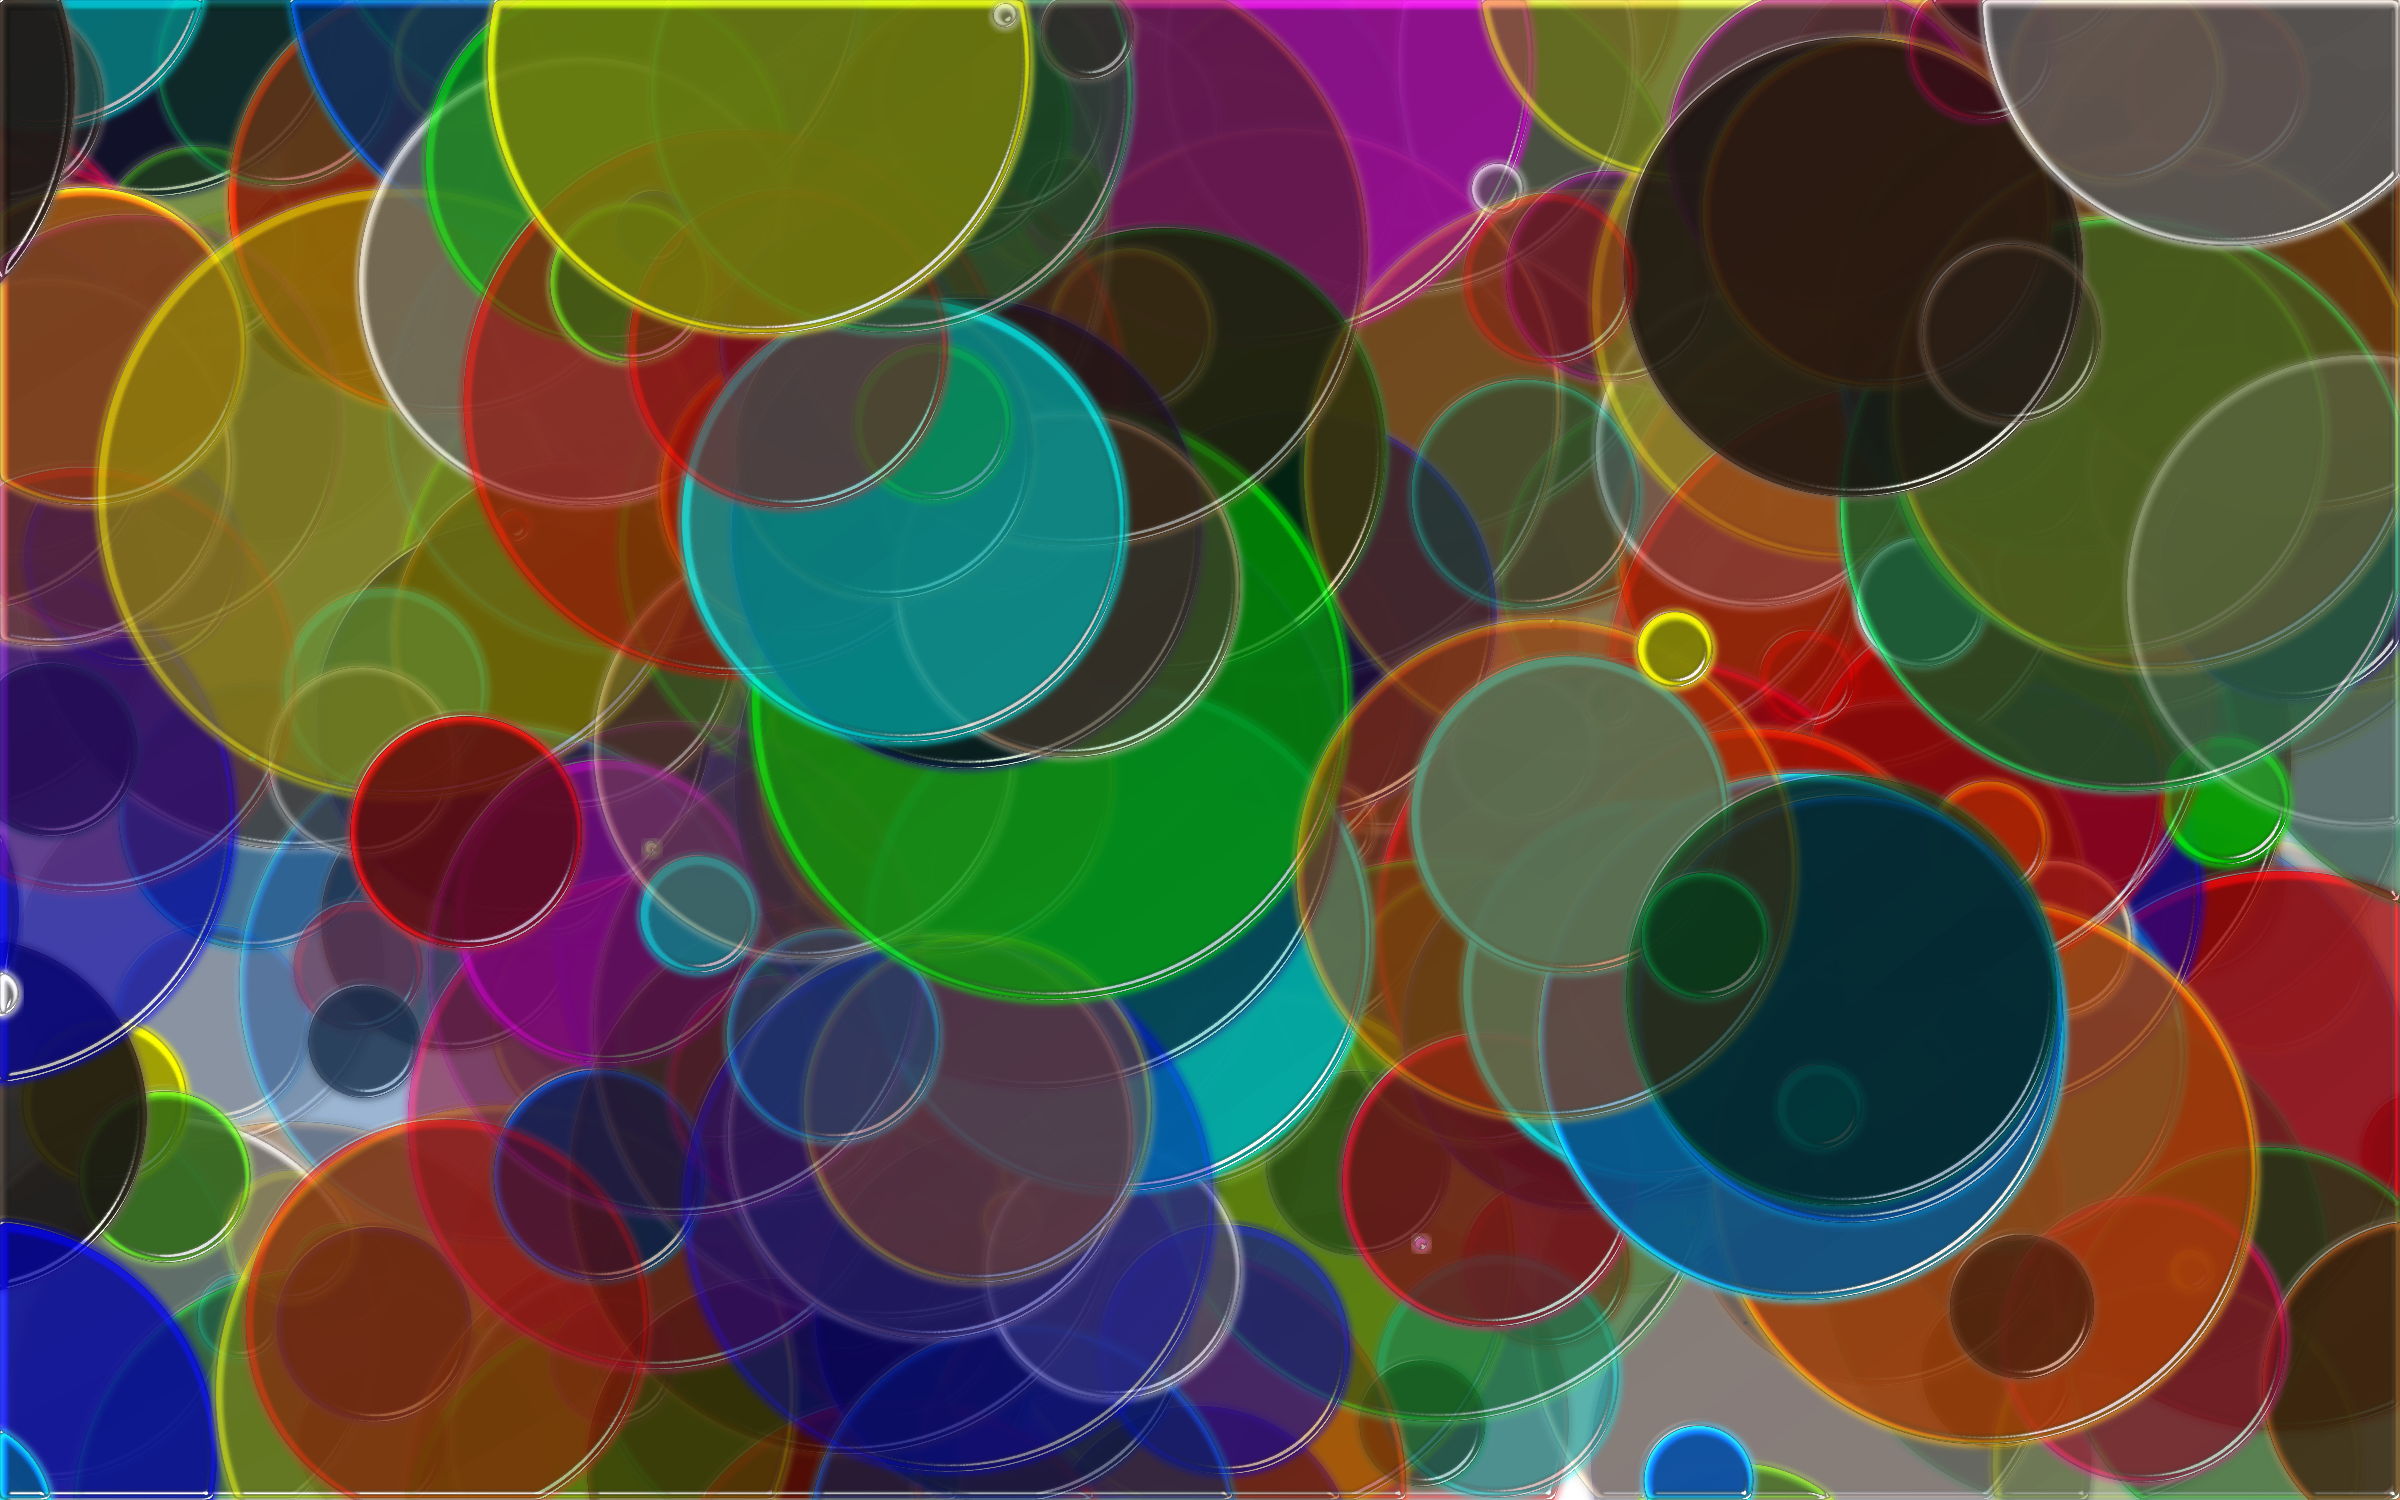 Clipart - Overlapping Circles Background 4